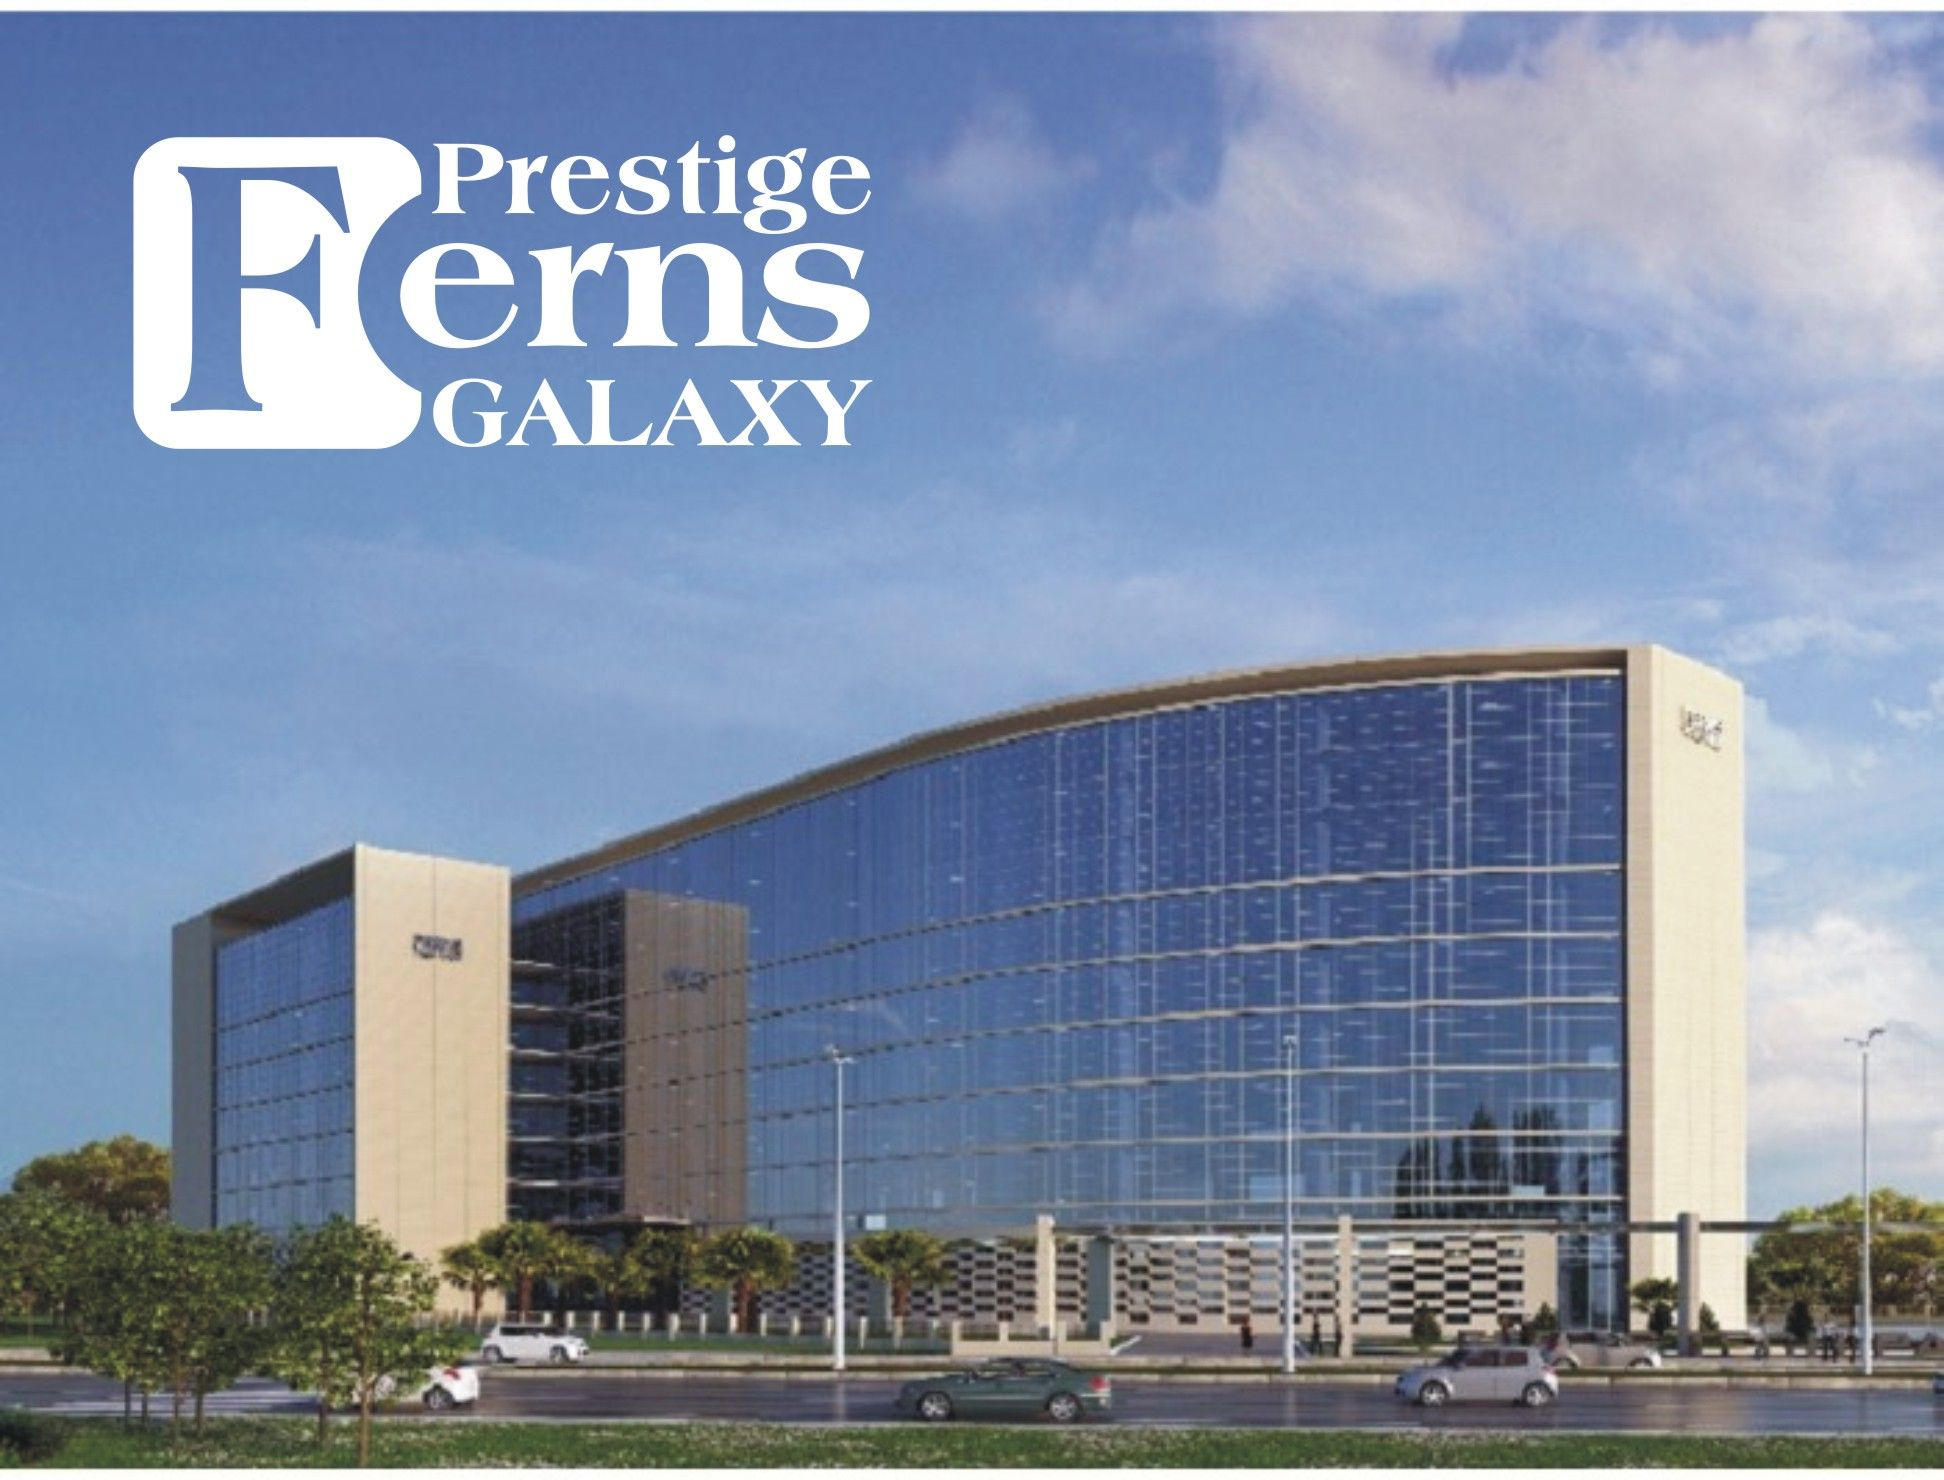 Prestige Ferns Galaxy Purple Index 8910 Prestige